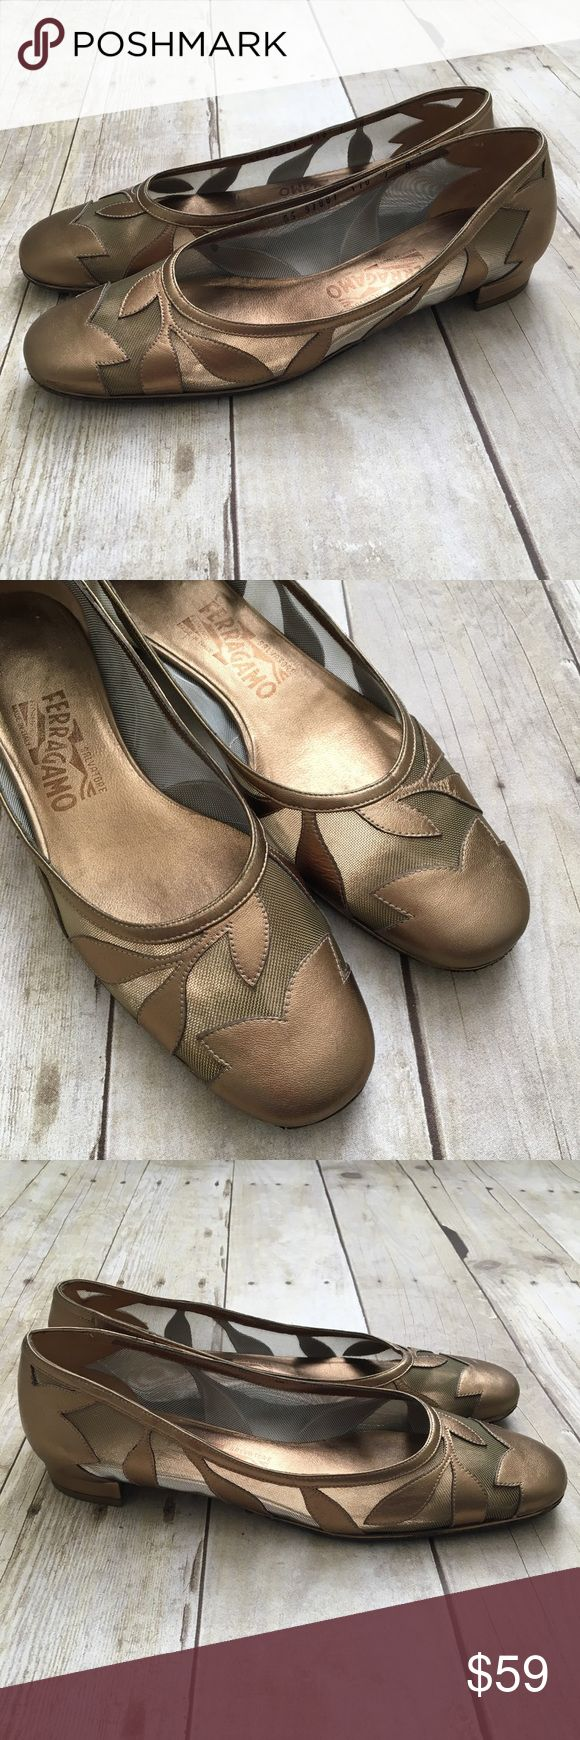 """Salvatore Ferragamo Metallic Gold Dress Flats In excellent condition with little sign of wear. NOTE: The upper half of the bottom soles have been replaced. It is a sturdy, well-made """"Topy"""" brand rubber replacement. Please see last photo for glimpse of how it is attached to bottom. It does not affect the way it feels while being worn. Size 7 medium. Also see brown glue spot on toe. Not noticeable while wearing. Salvatore Ferragamo Shoes Flats & Loafers"""